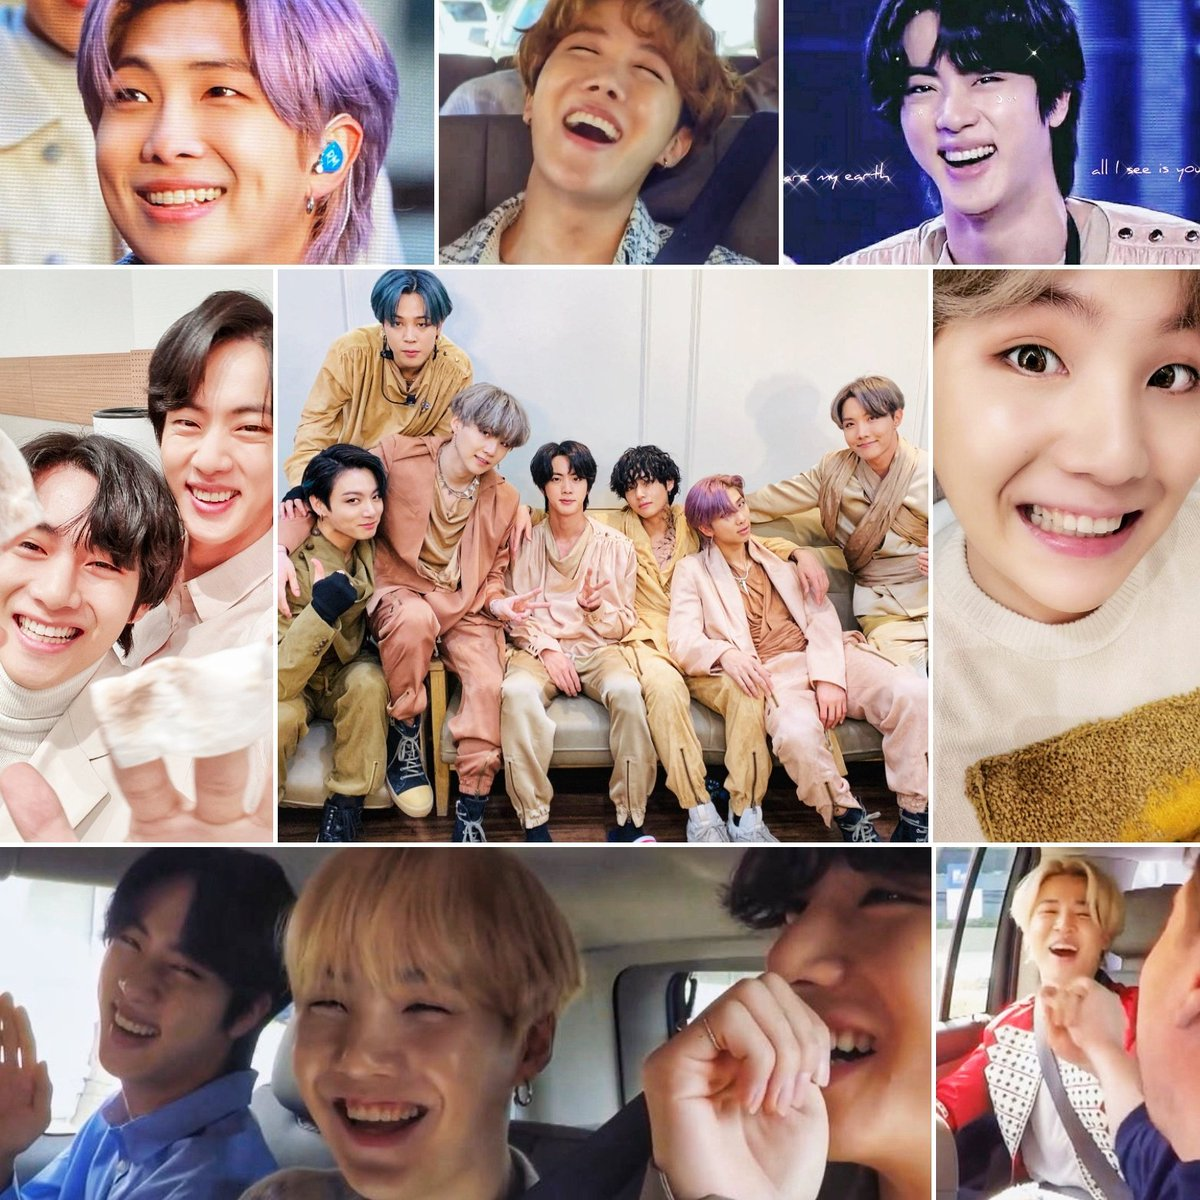 I was scrolling through my recently saved pics of the boys and they've been smiling so beautifully lately? Here are a few. Wanted to share with #BTSARMY  because at zero o'clock, when a new day begins, we will be happy    @BTS_twt #BTSComeback2020<br>http://pic.twitter.com/uZOjJFQPXJ